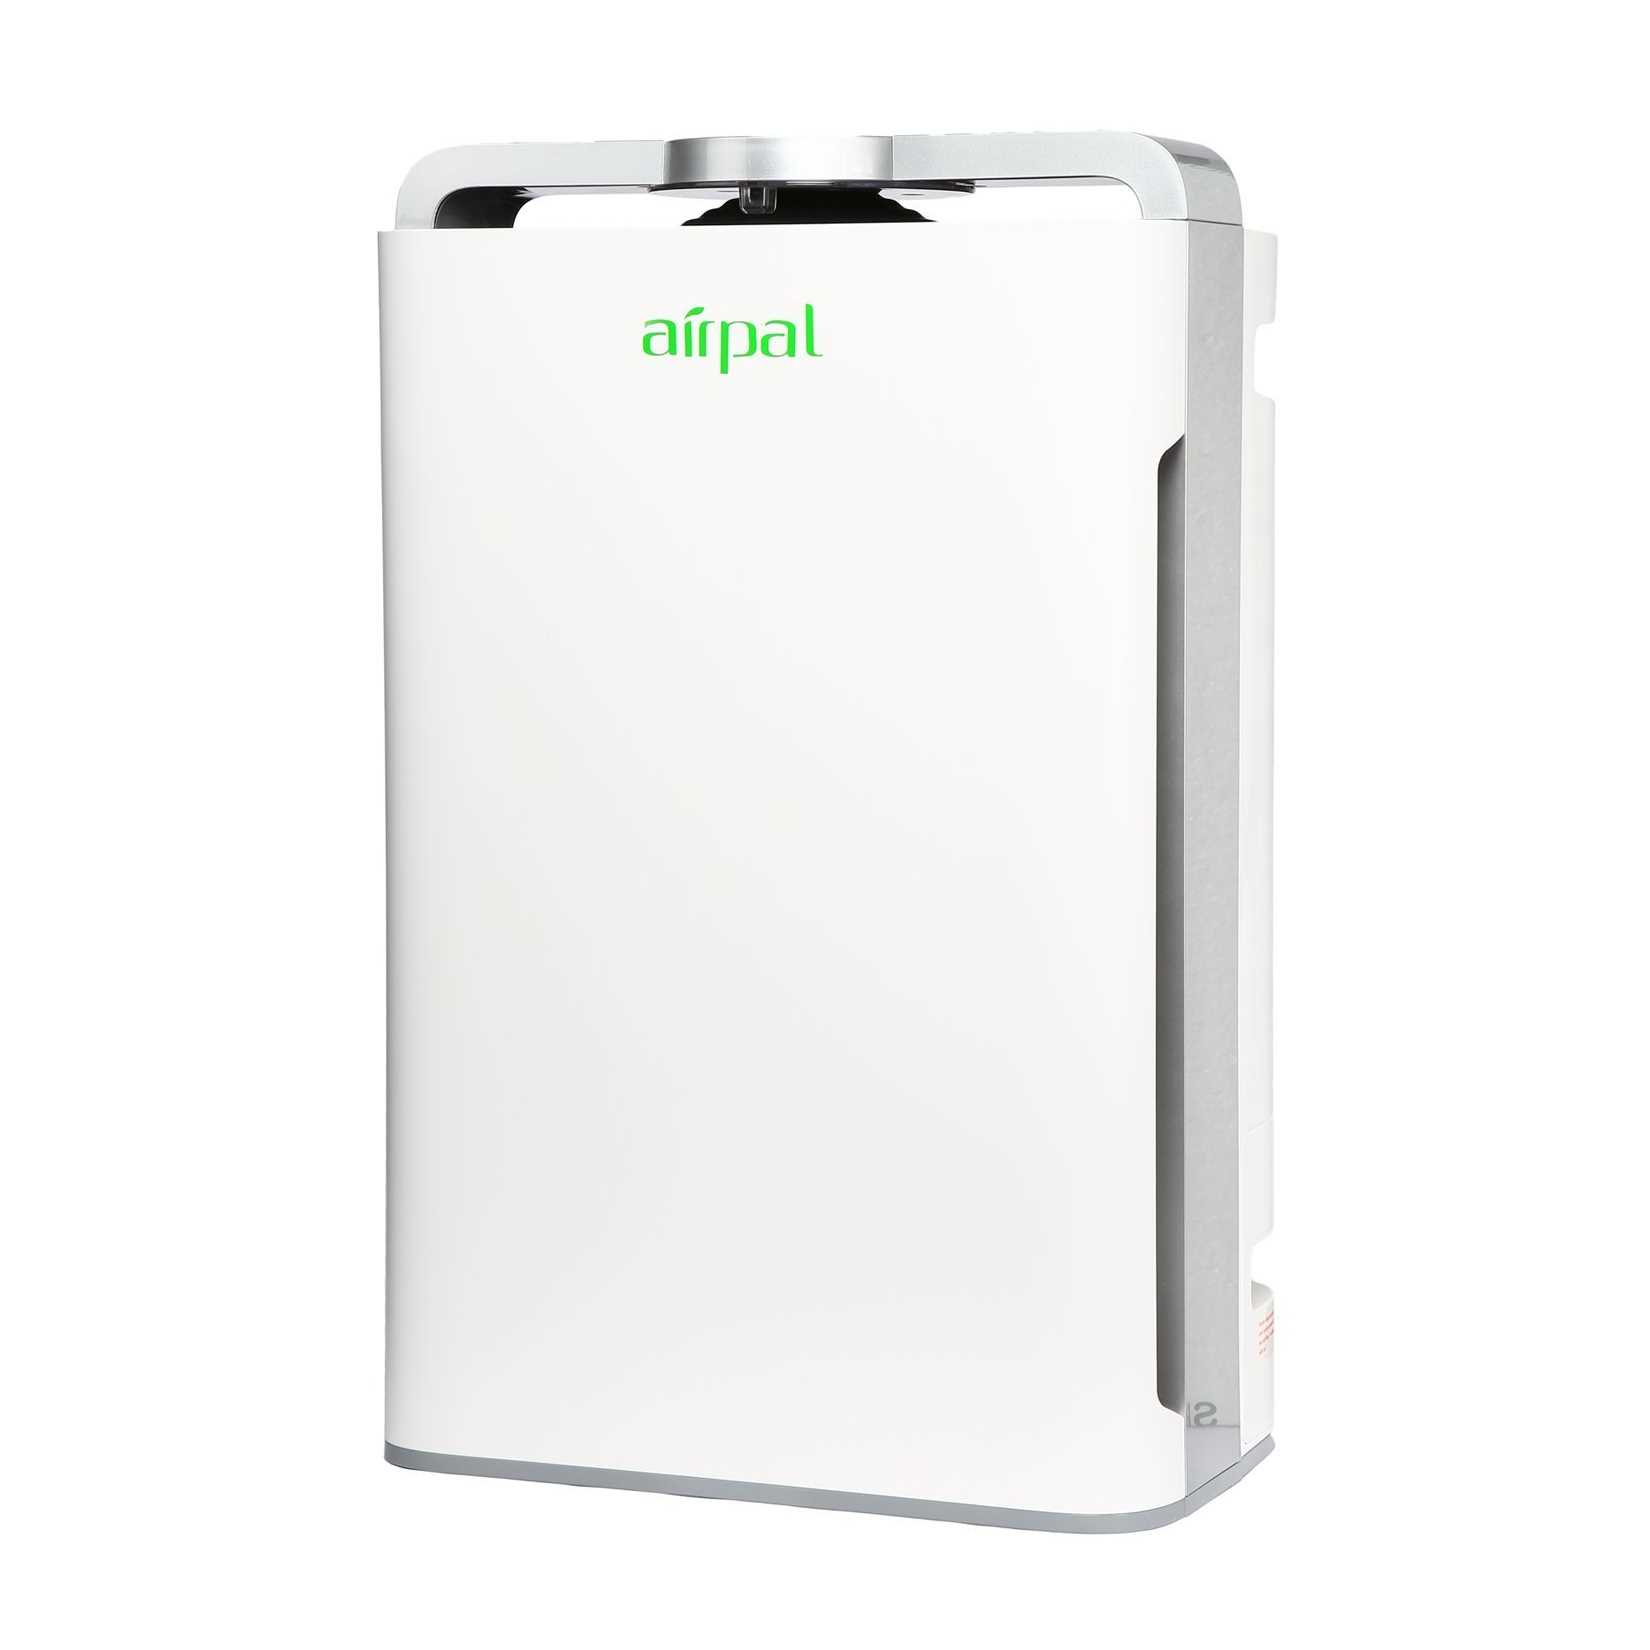 Airpal KJ450FK08A Room Air Purifier